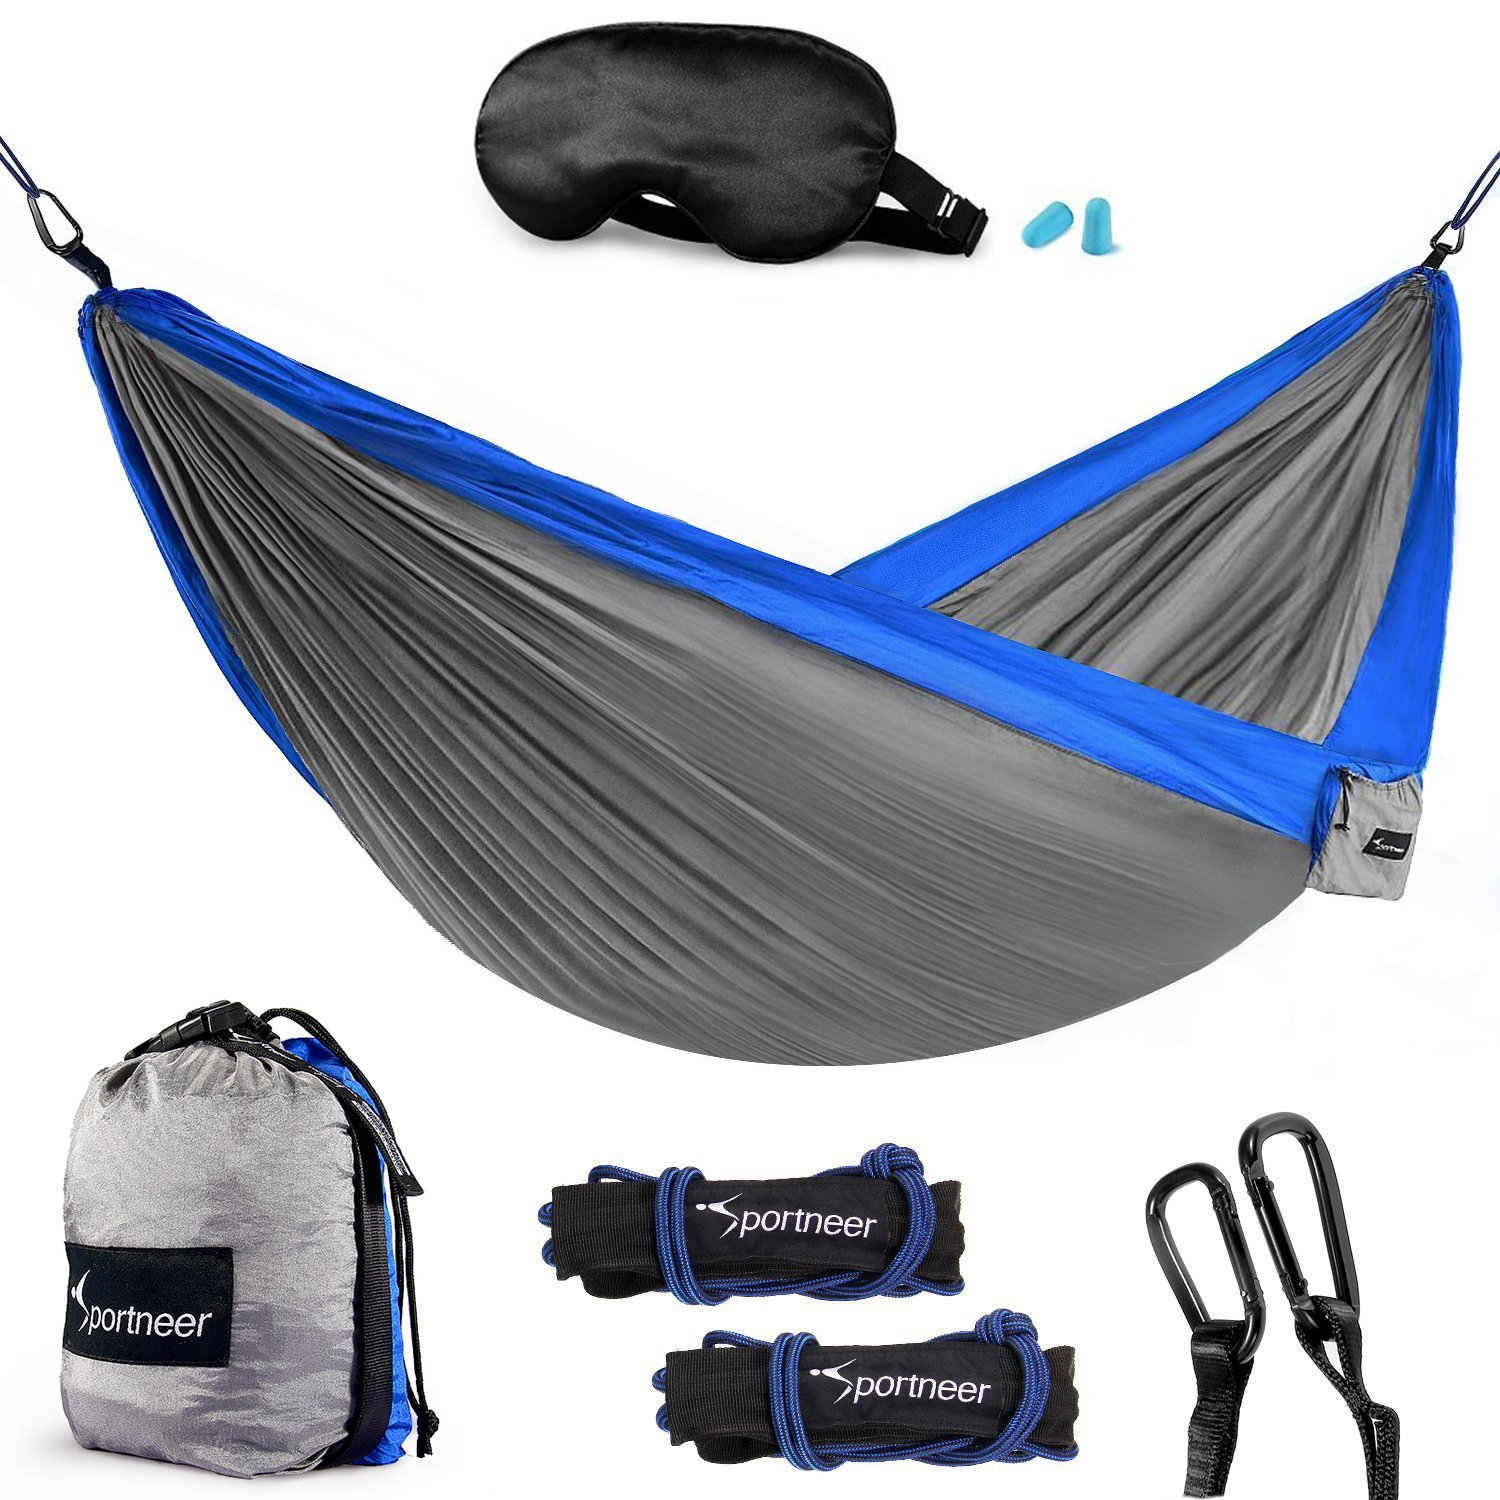 Sportneer Camping Hammock ONLY...